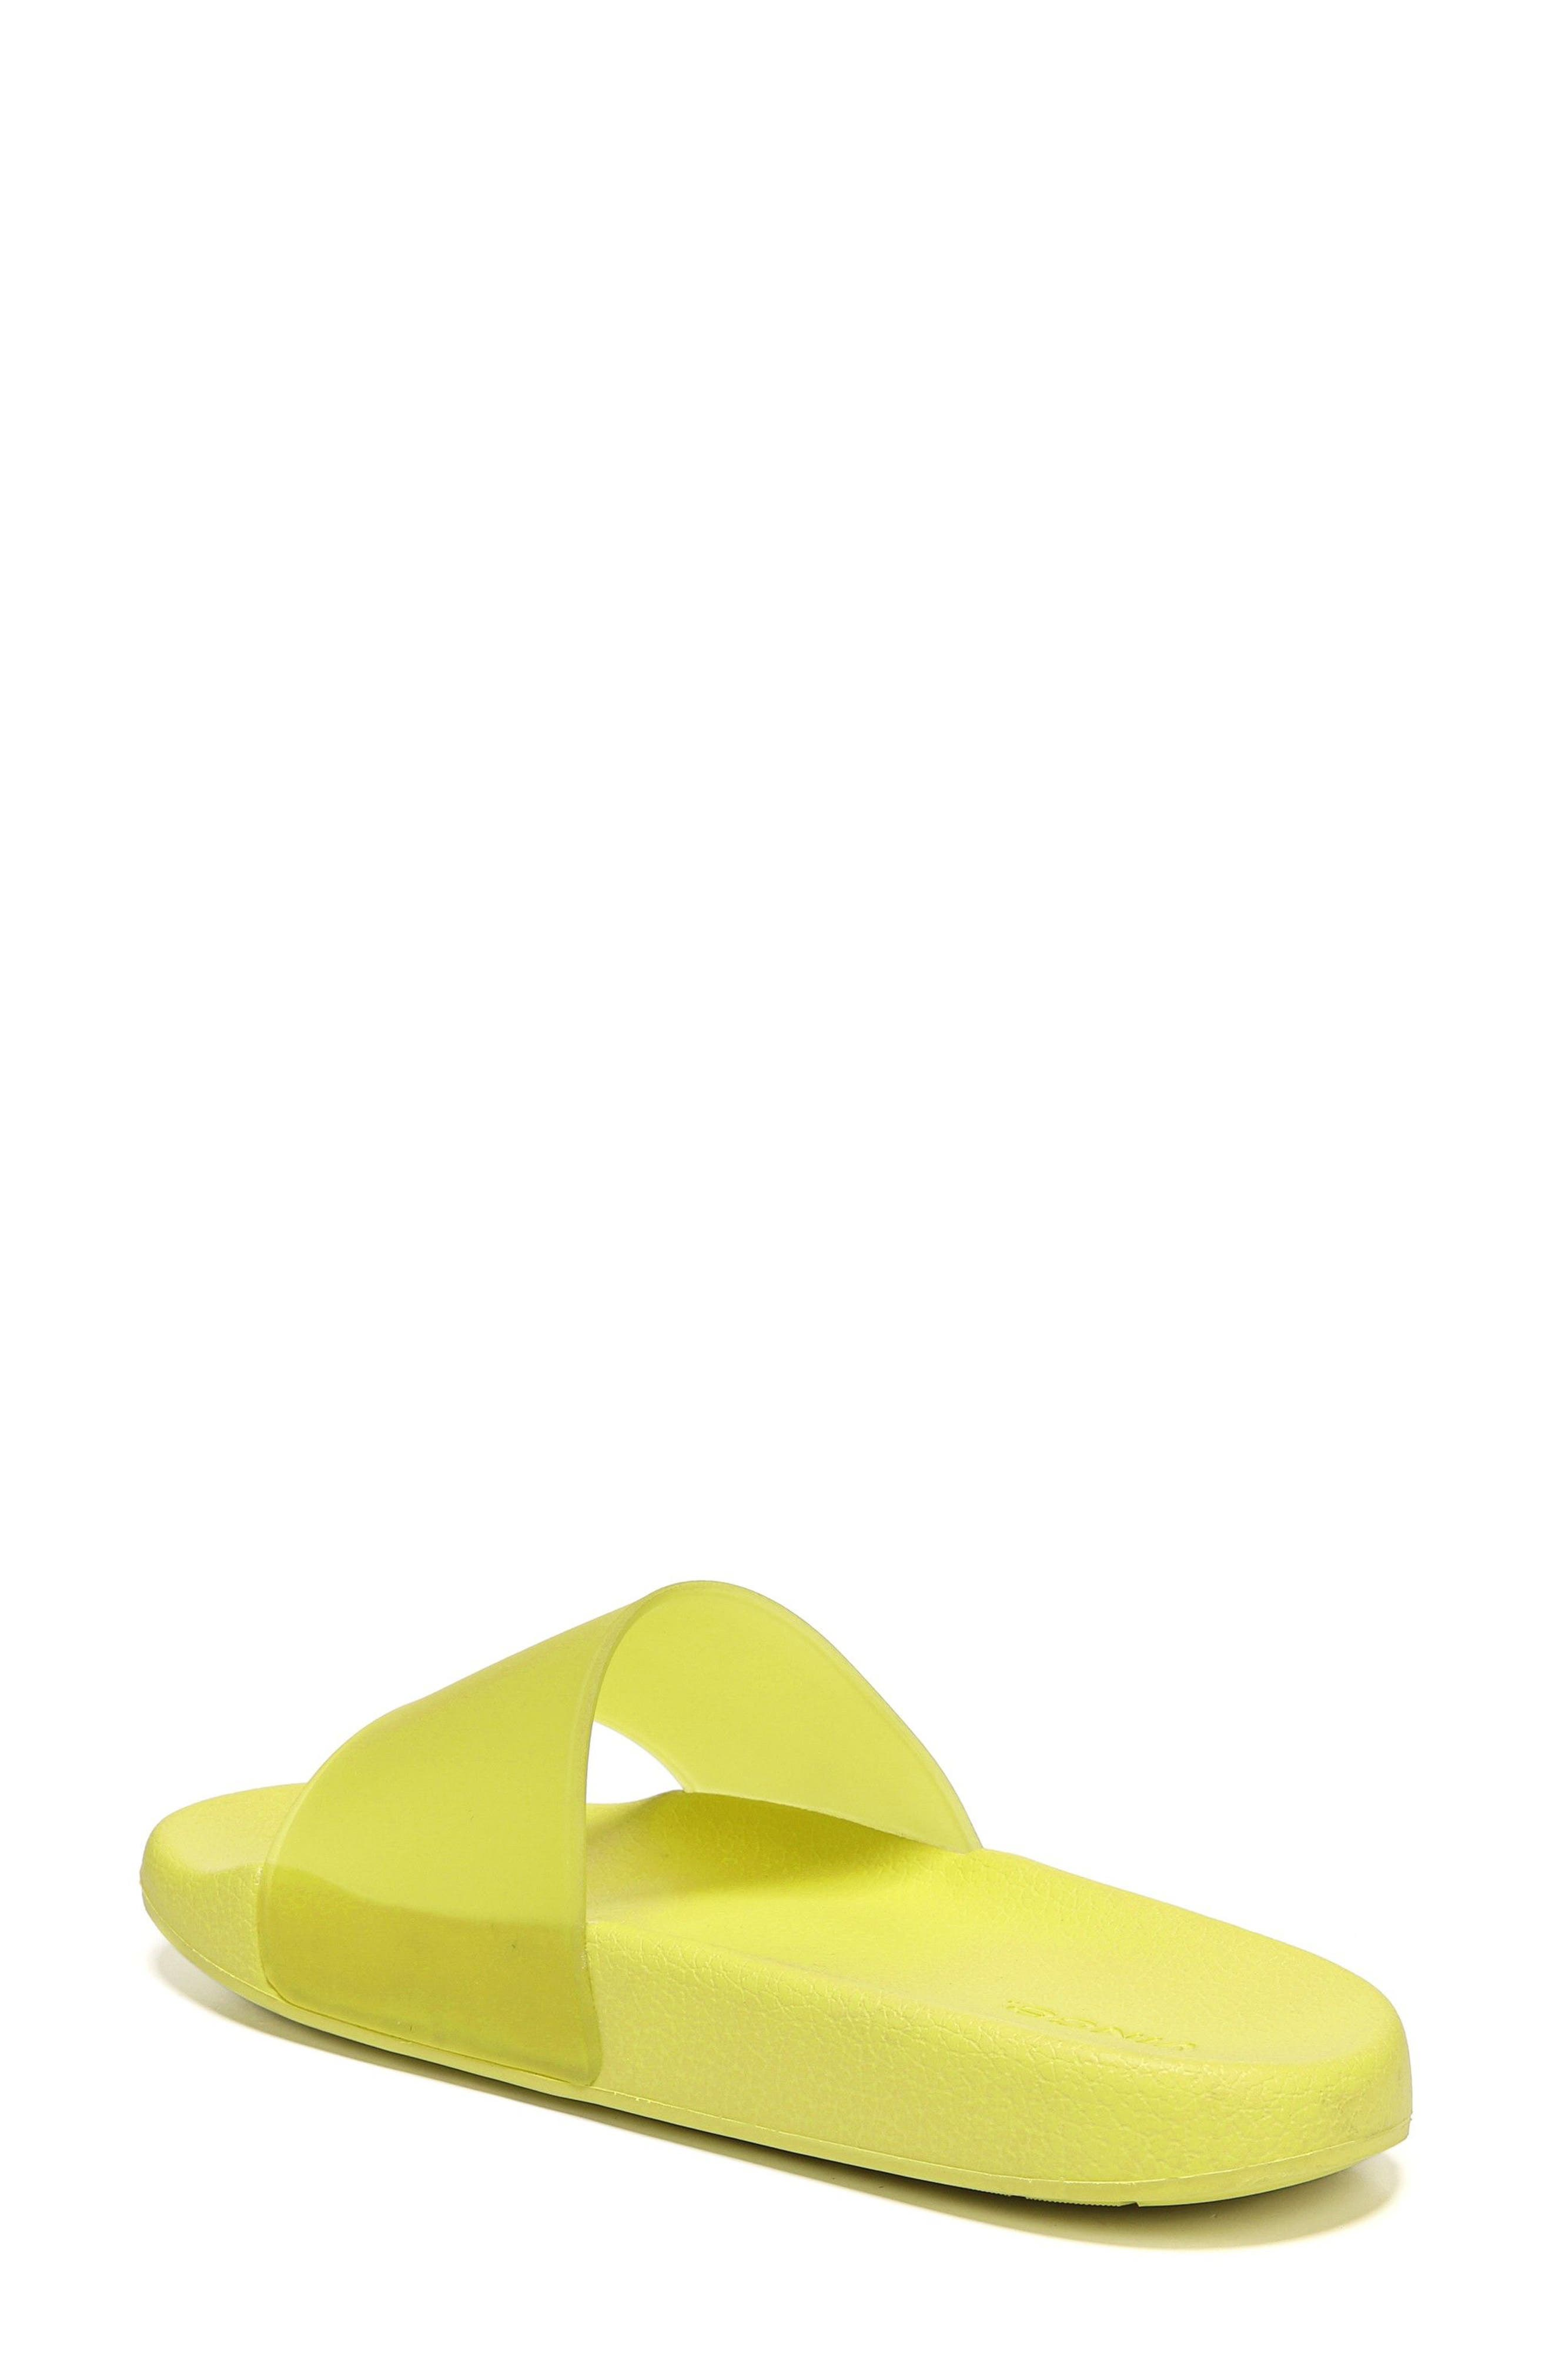 Alternate Image 2  - Vince Westcoast Slide Sandal (Women)